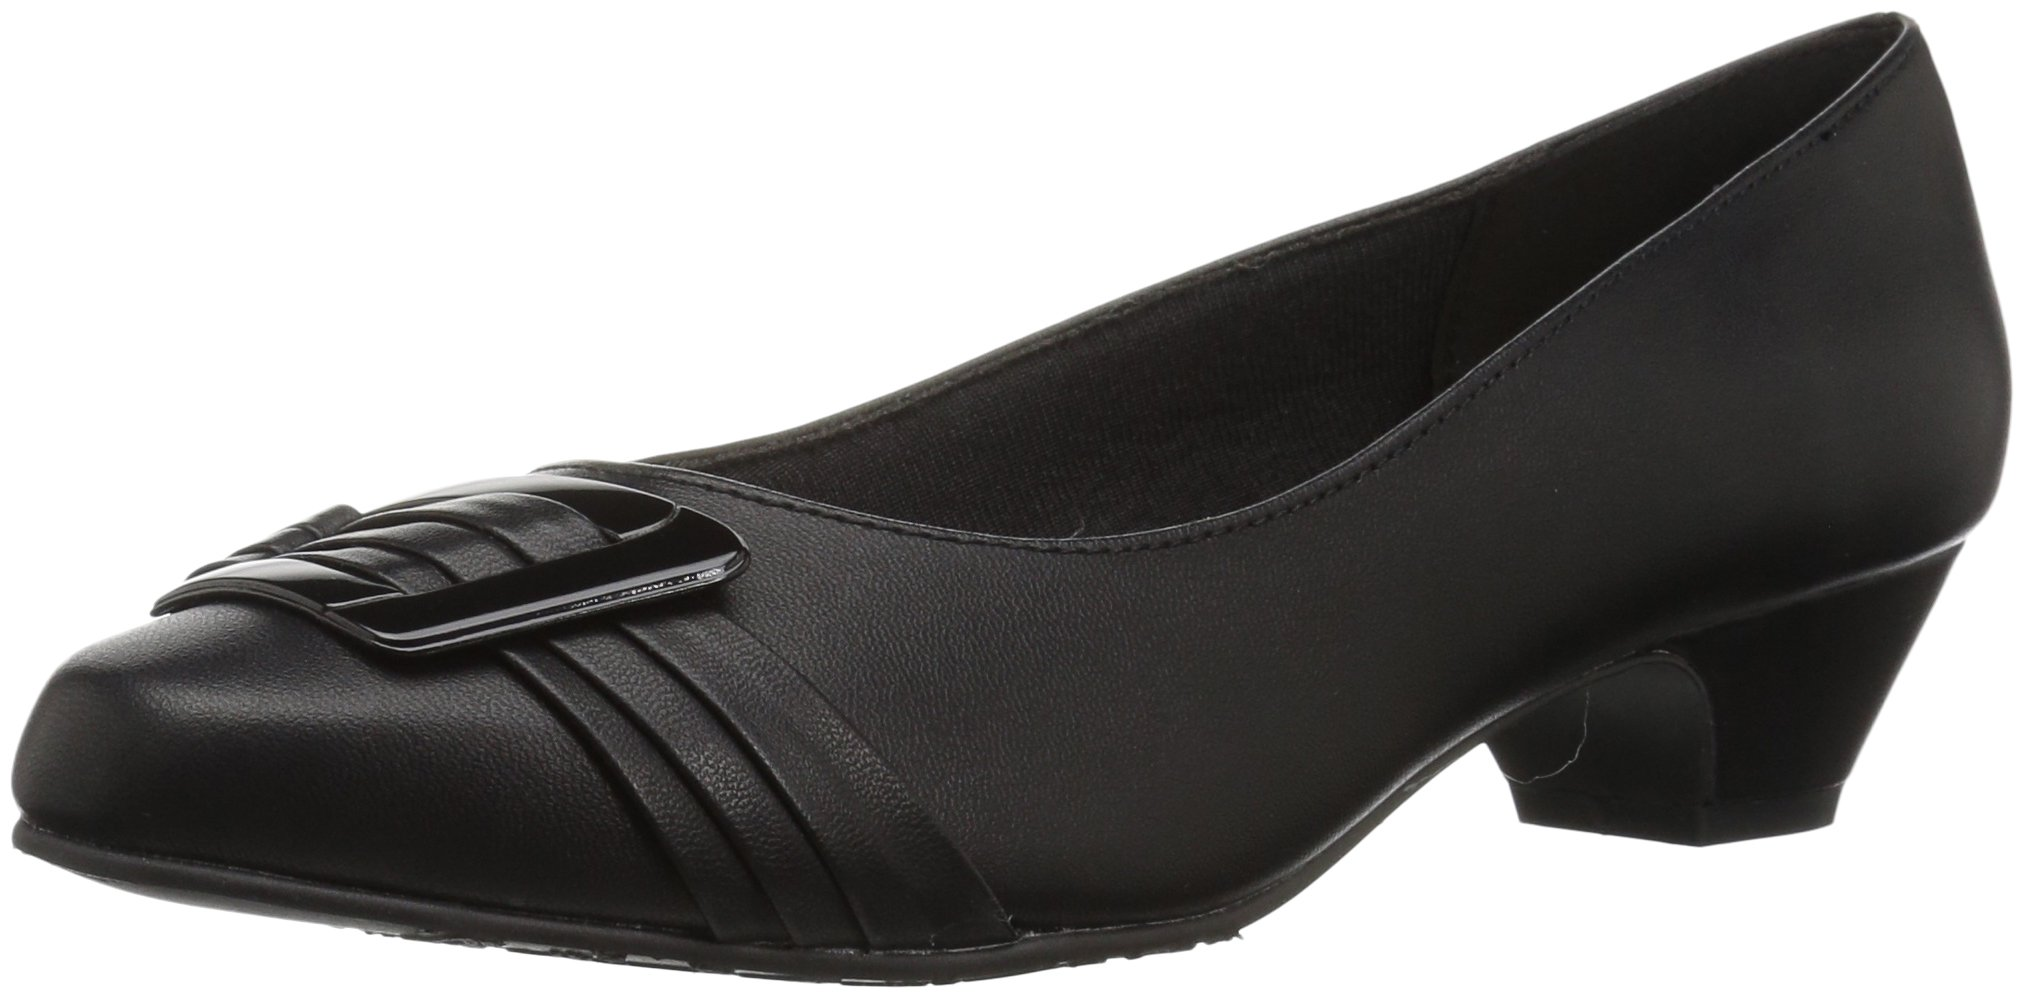 Soft Style by Hush Puppies Women's Pleats Be with You Dress Pump, Black/Patent, 10 W US